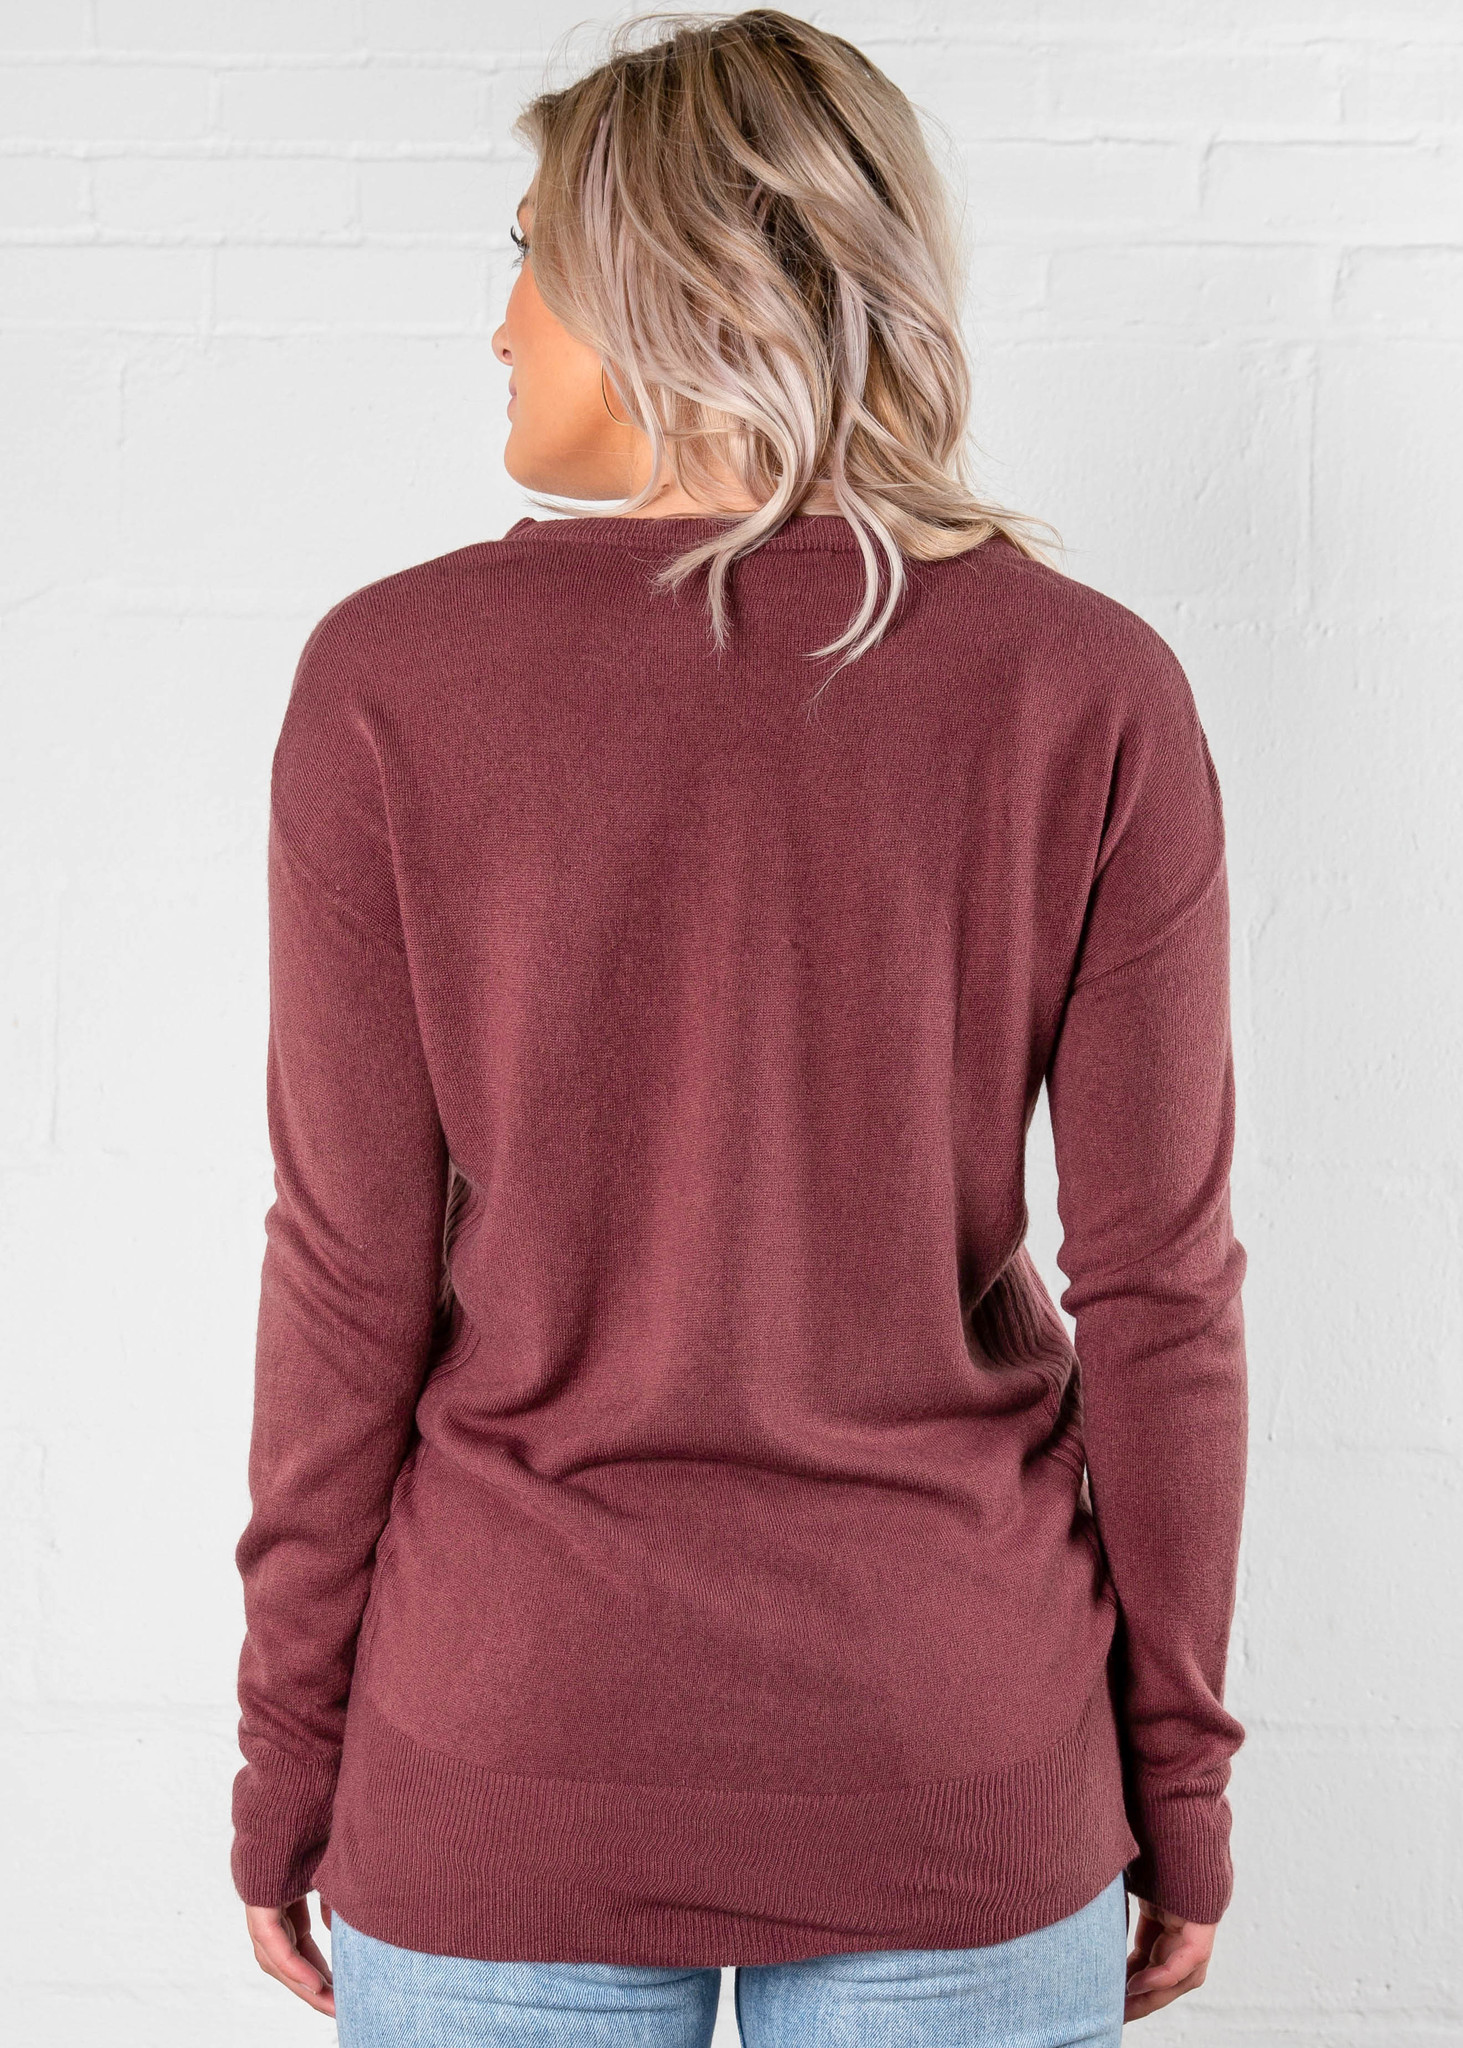 YOUNG LOVE SUPER SOFT SWEATER